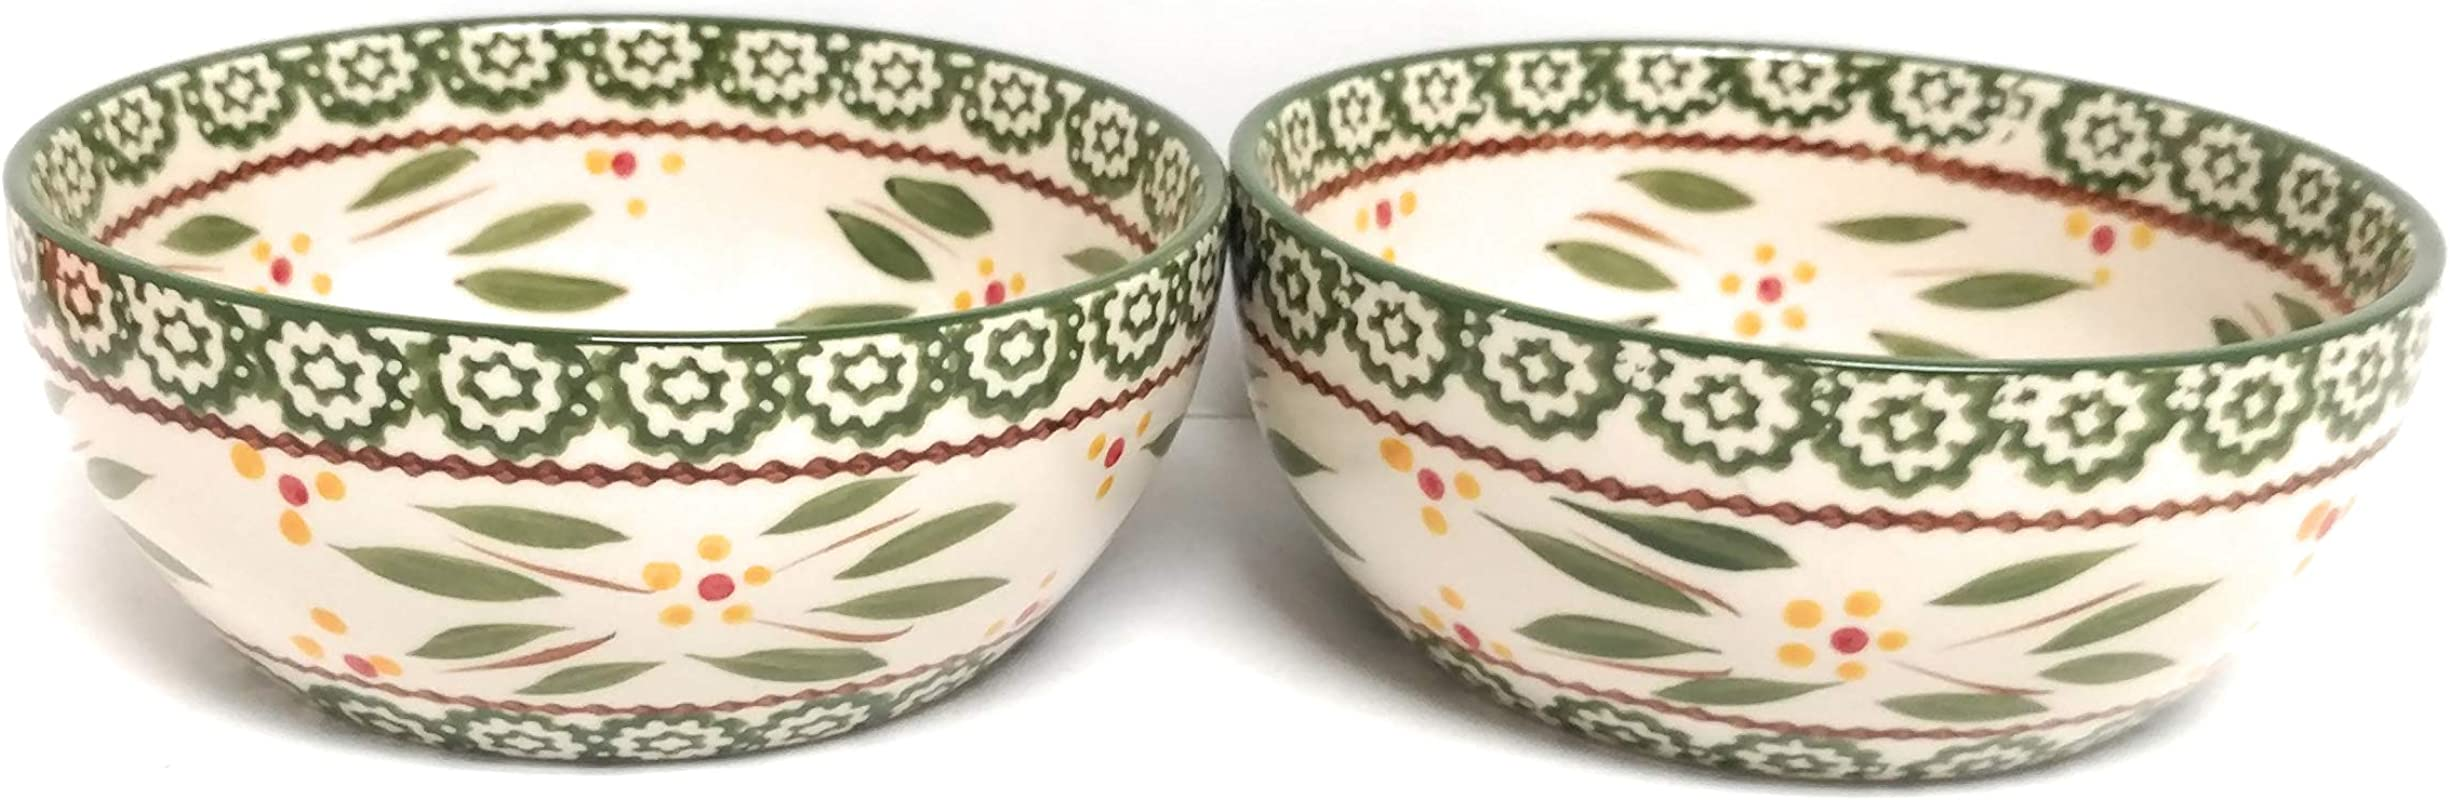 Temp Tations Set Of 2 Bowls Salad Soup Cereal Bowl 24 Ounces Each Old World Green